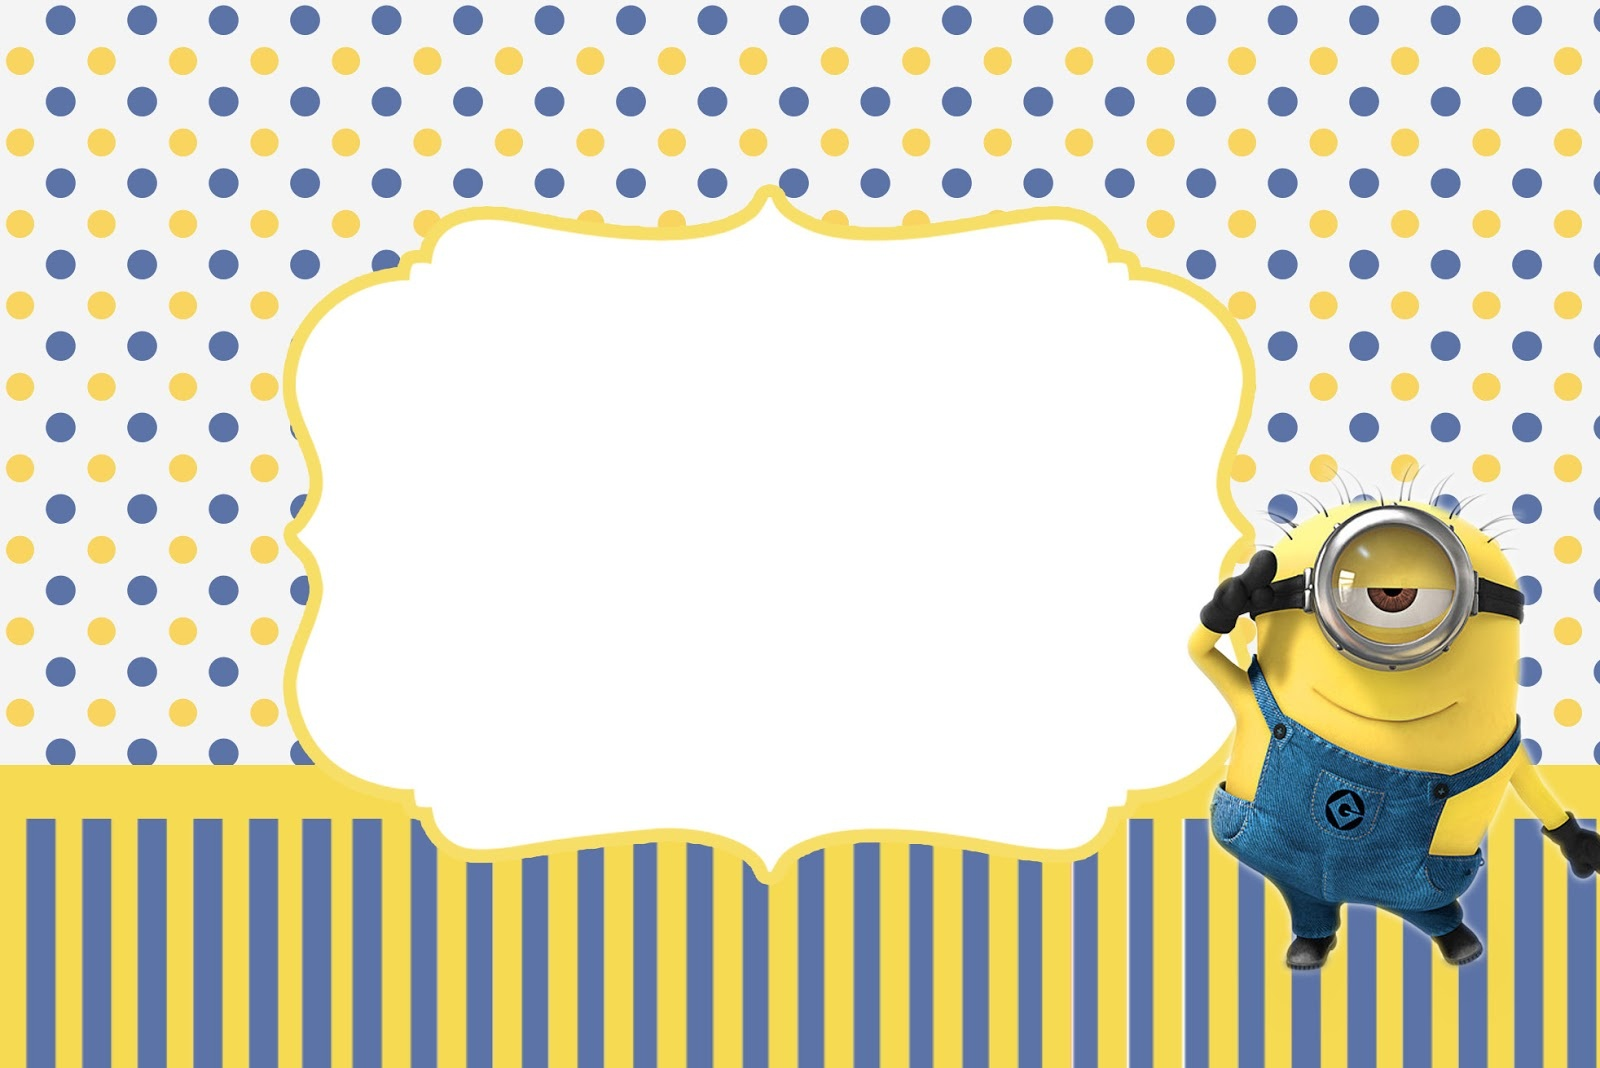 Inspired In Minions Party Invitations, Free Printables. - Oh My - Make Printable Party Invitations Online Free